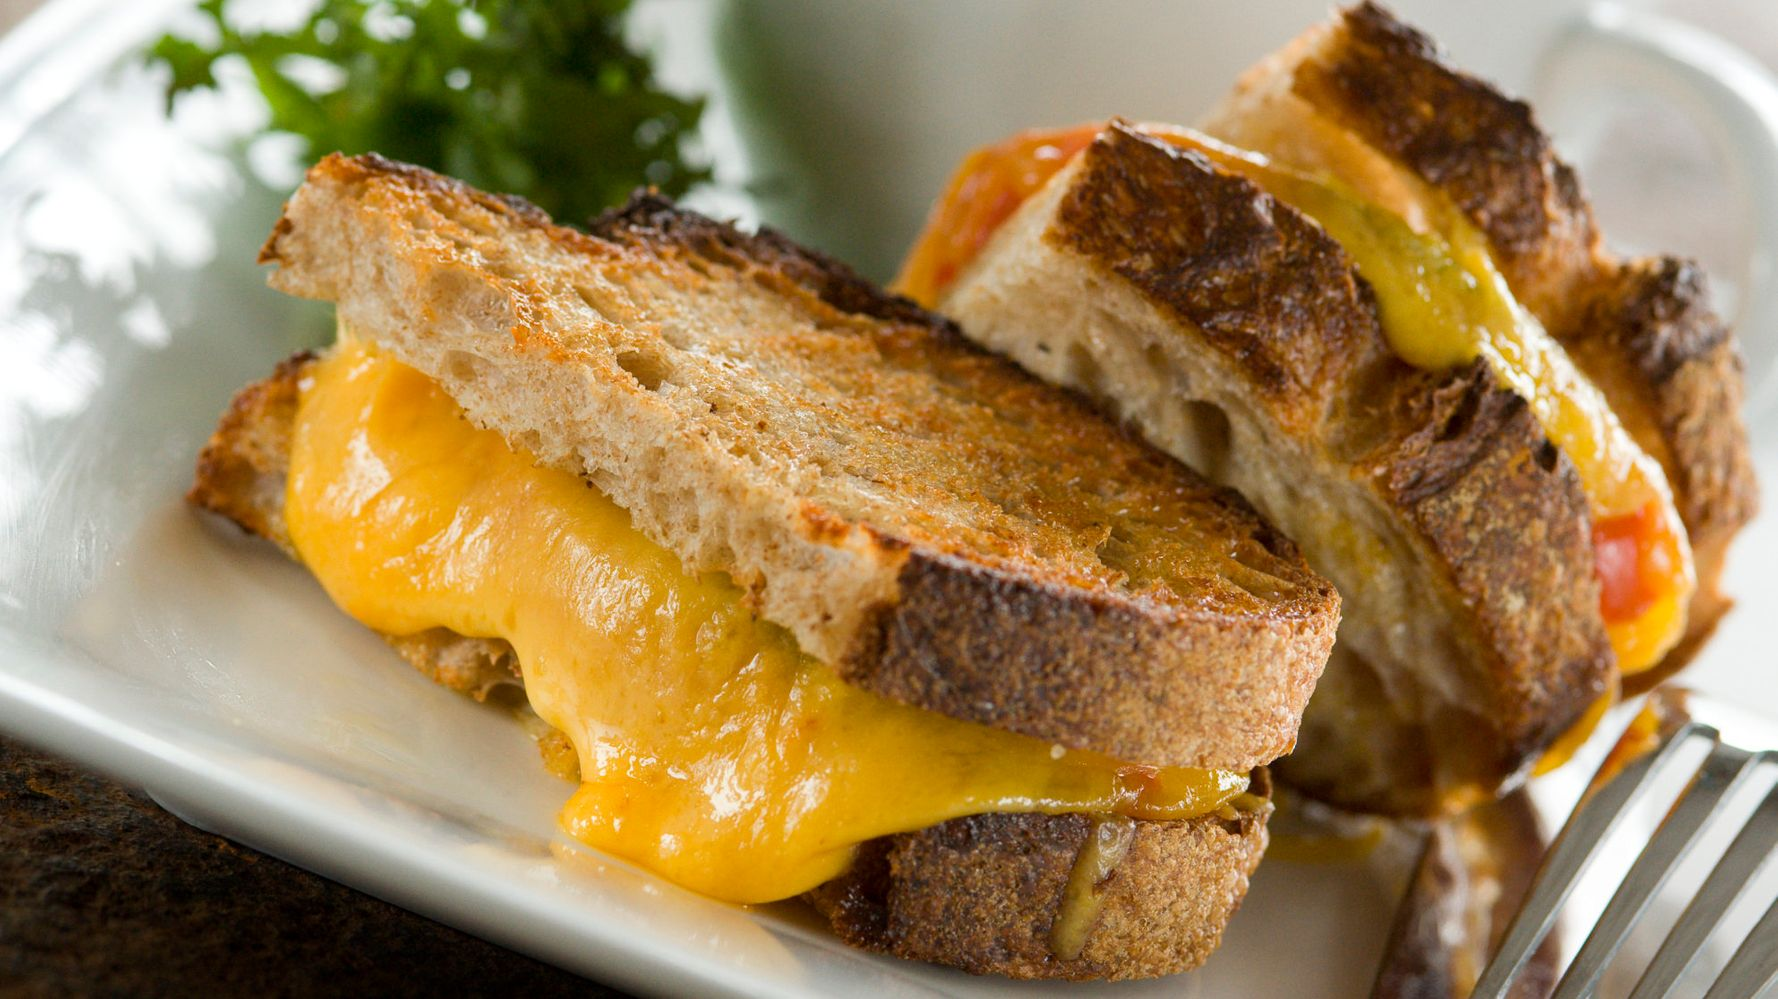 This Is The Best Cheese For Grilled Cheeses, According To Science